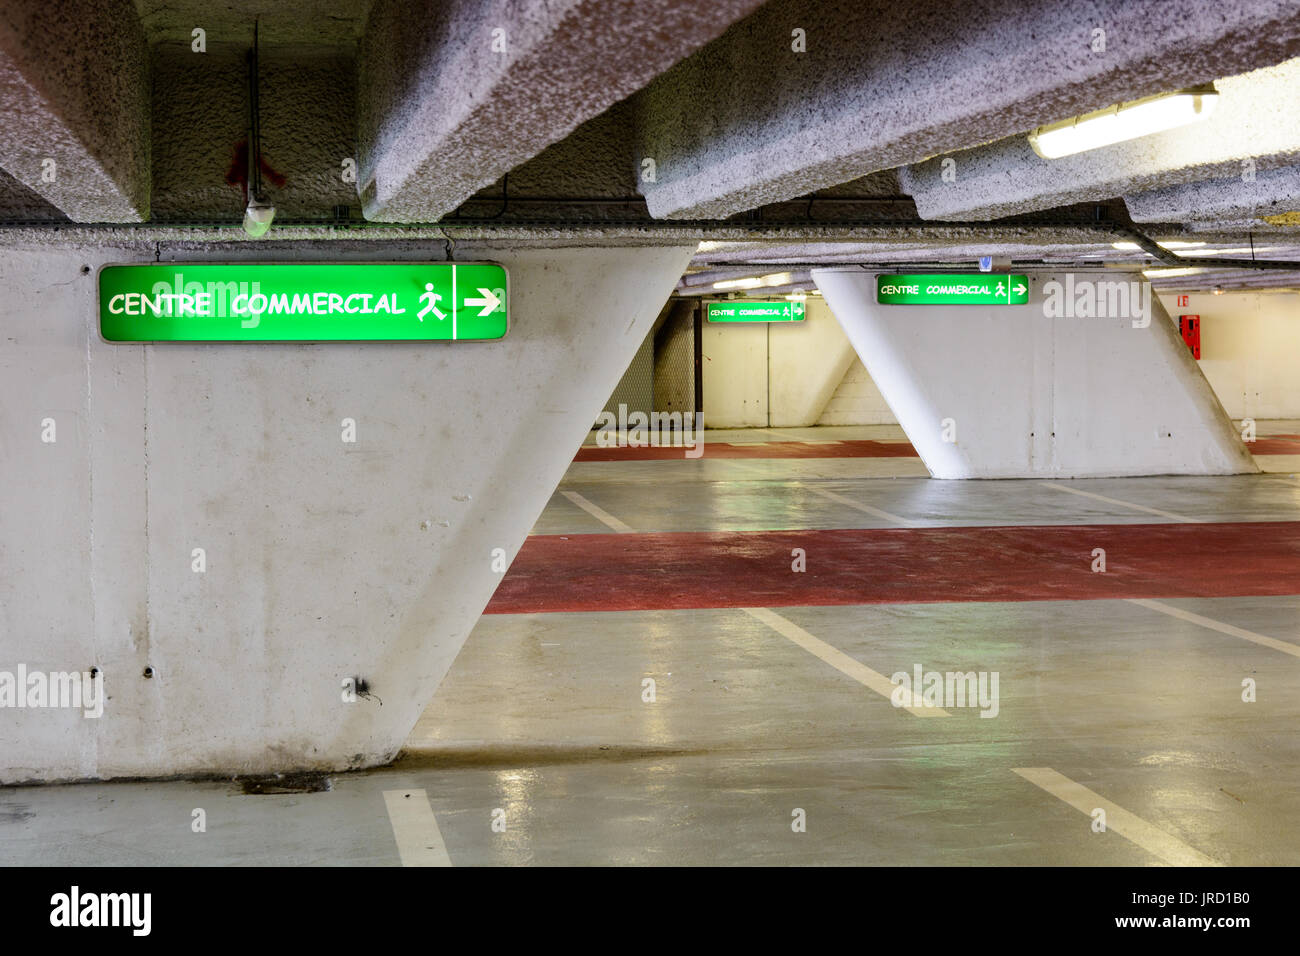 Luminous signs indicating the direction to the commercial center in an old decrepit underground parking lot. - Stock Image